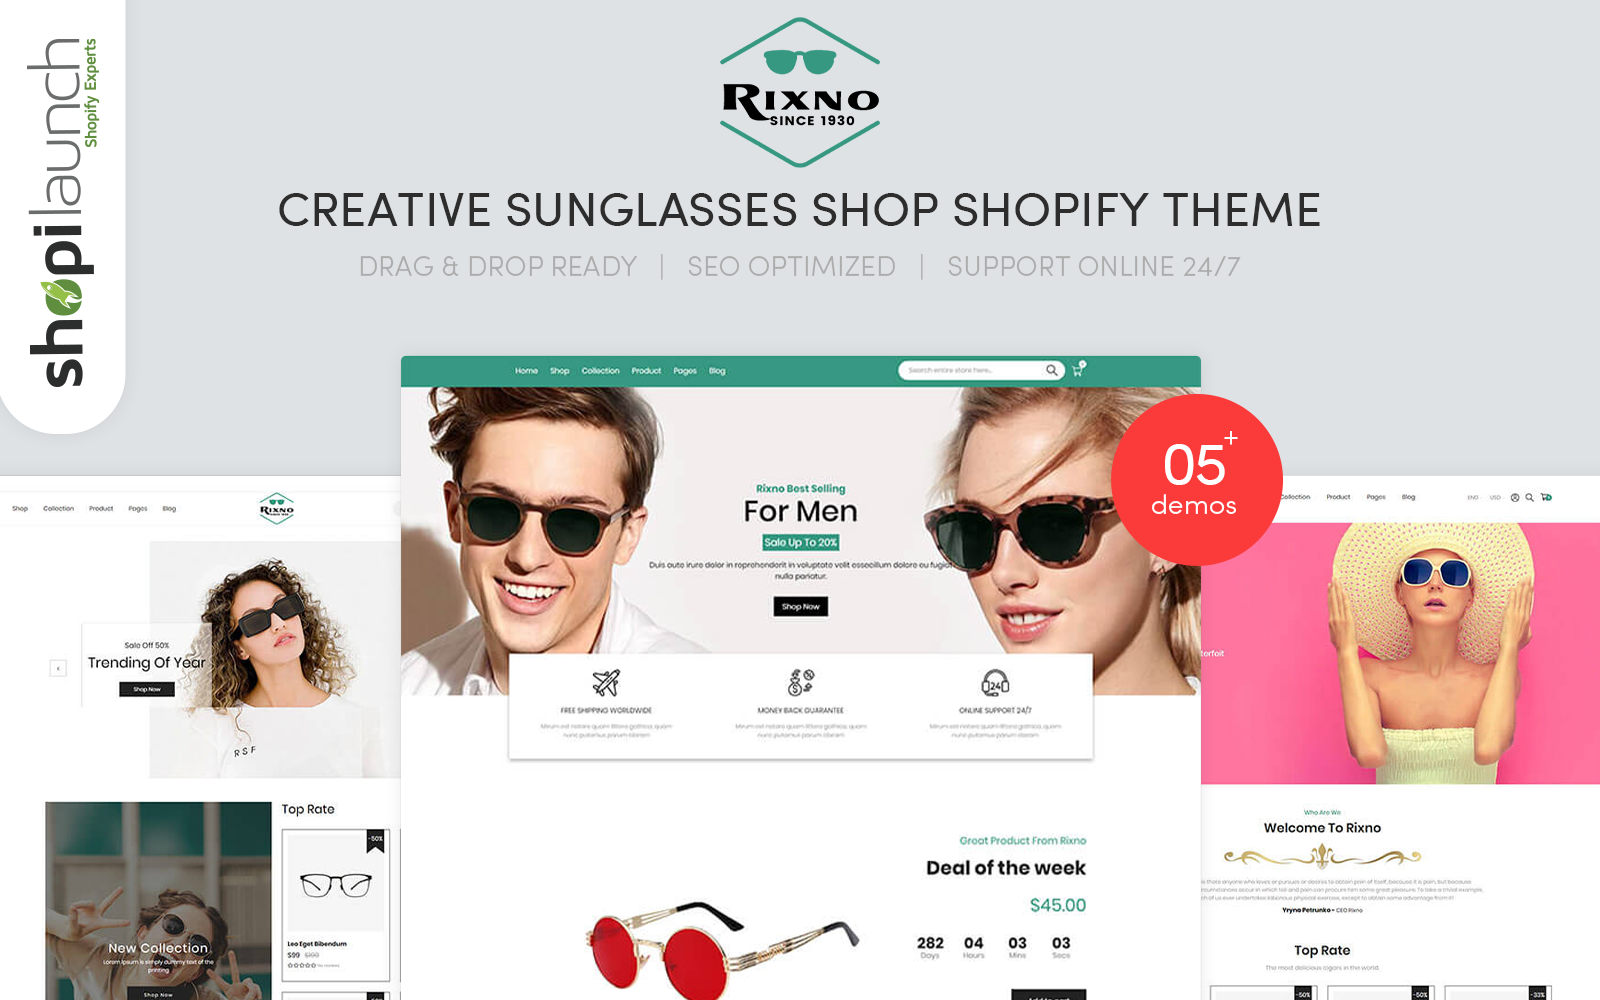 Rixno - Creative Sunglasses Shop Shopify Theme